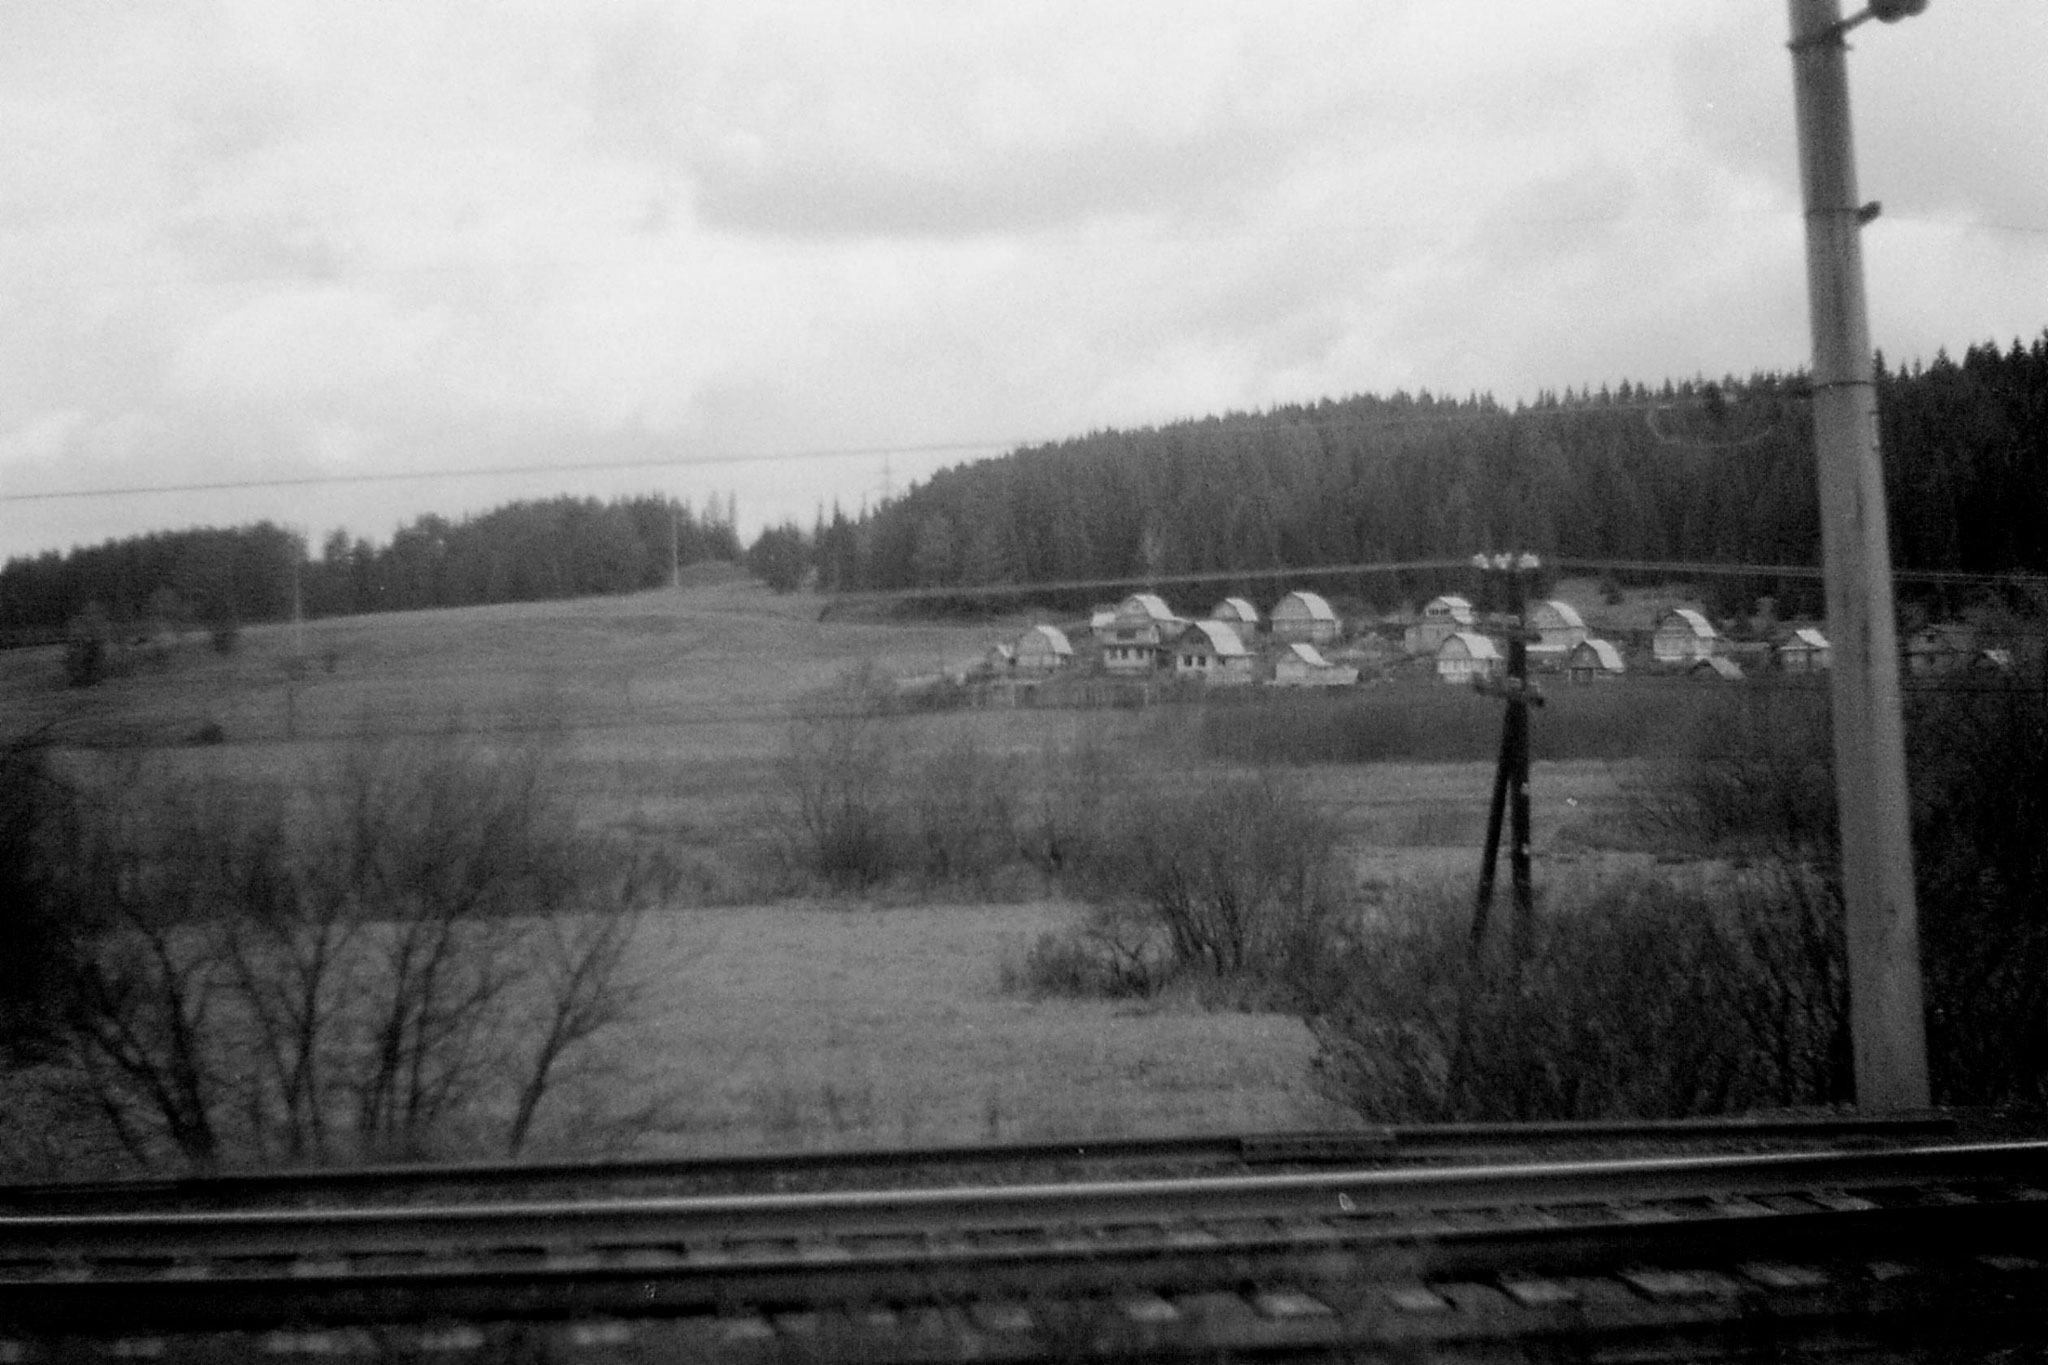 19/10/1988: 25: from Siberian Express between Balezino and Perm